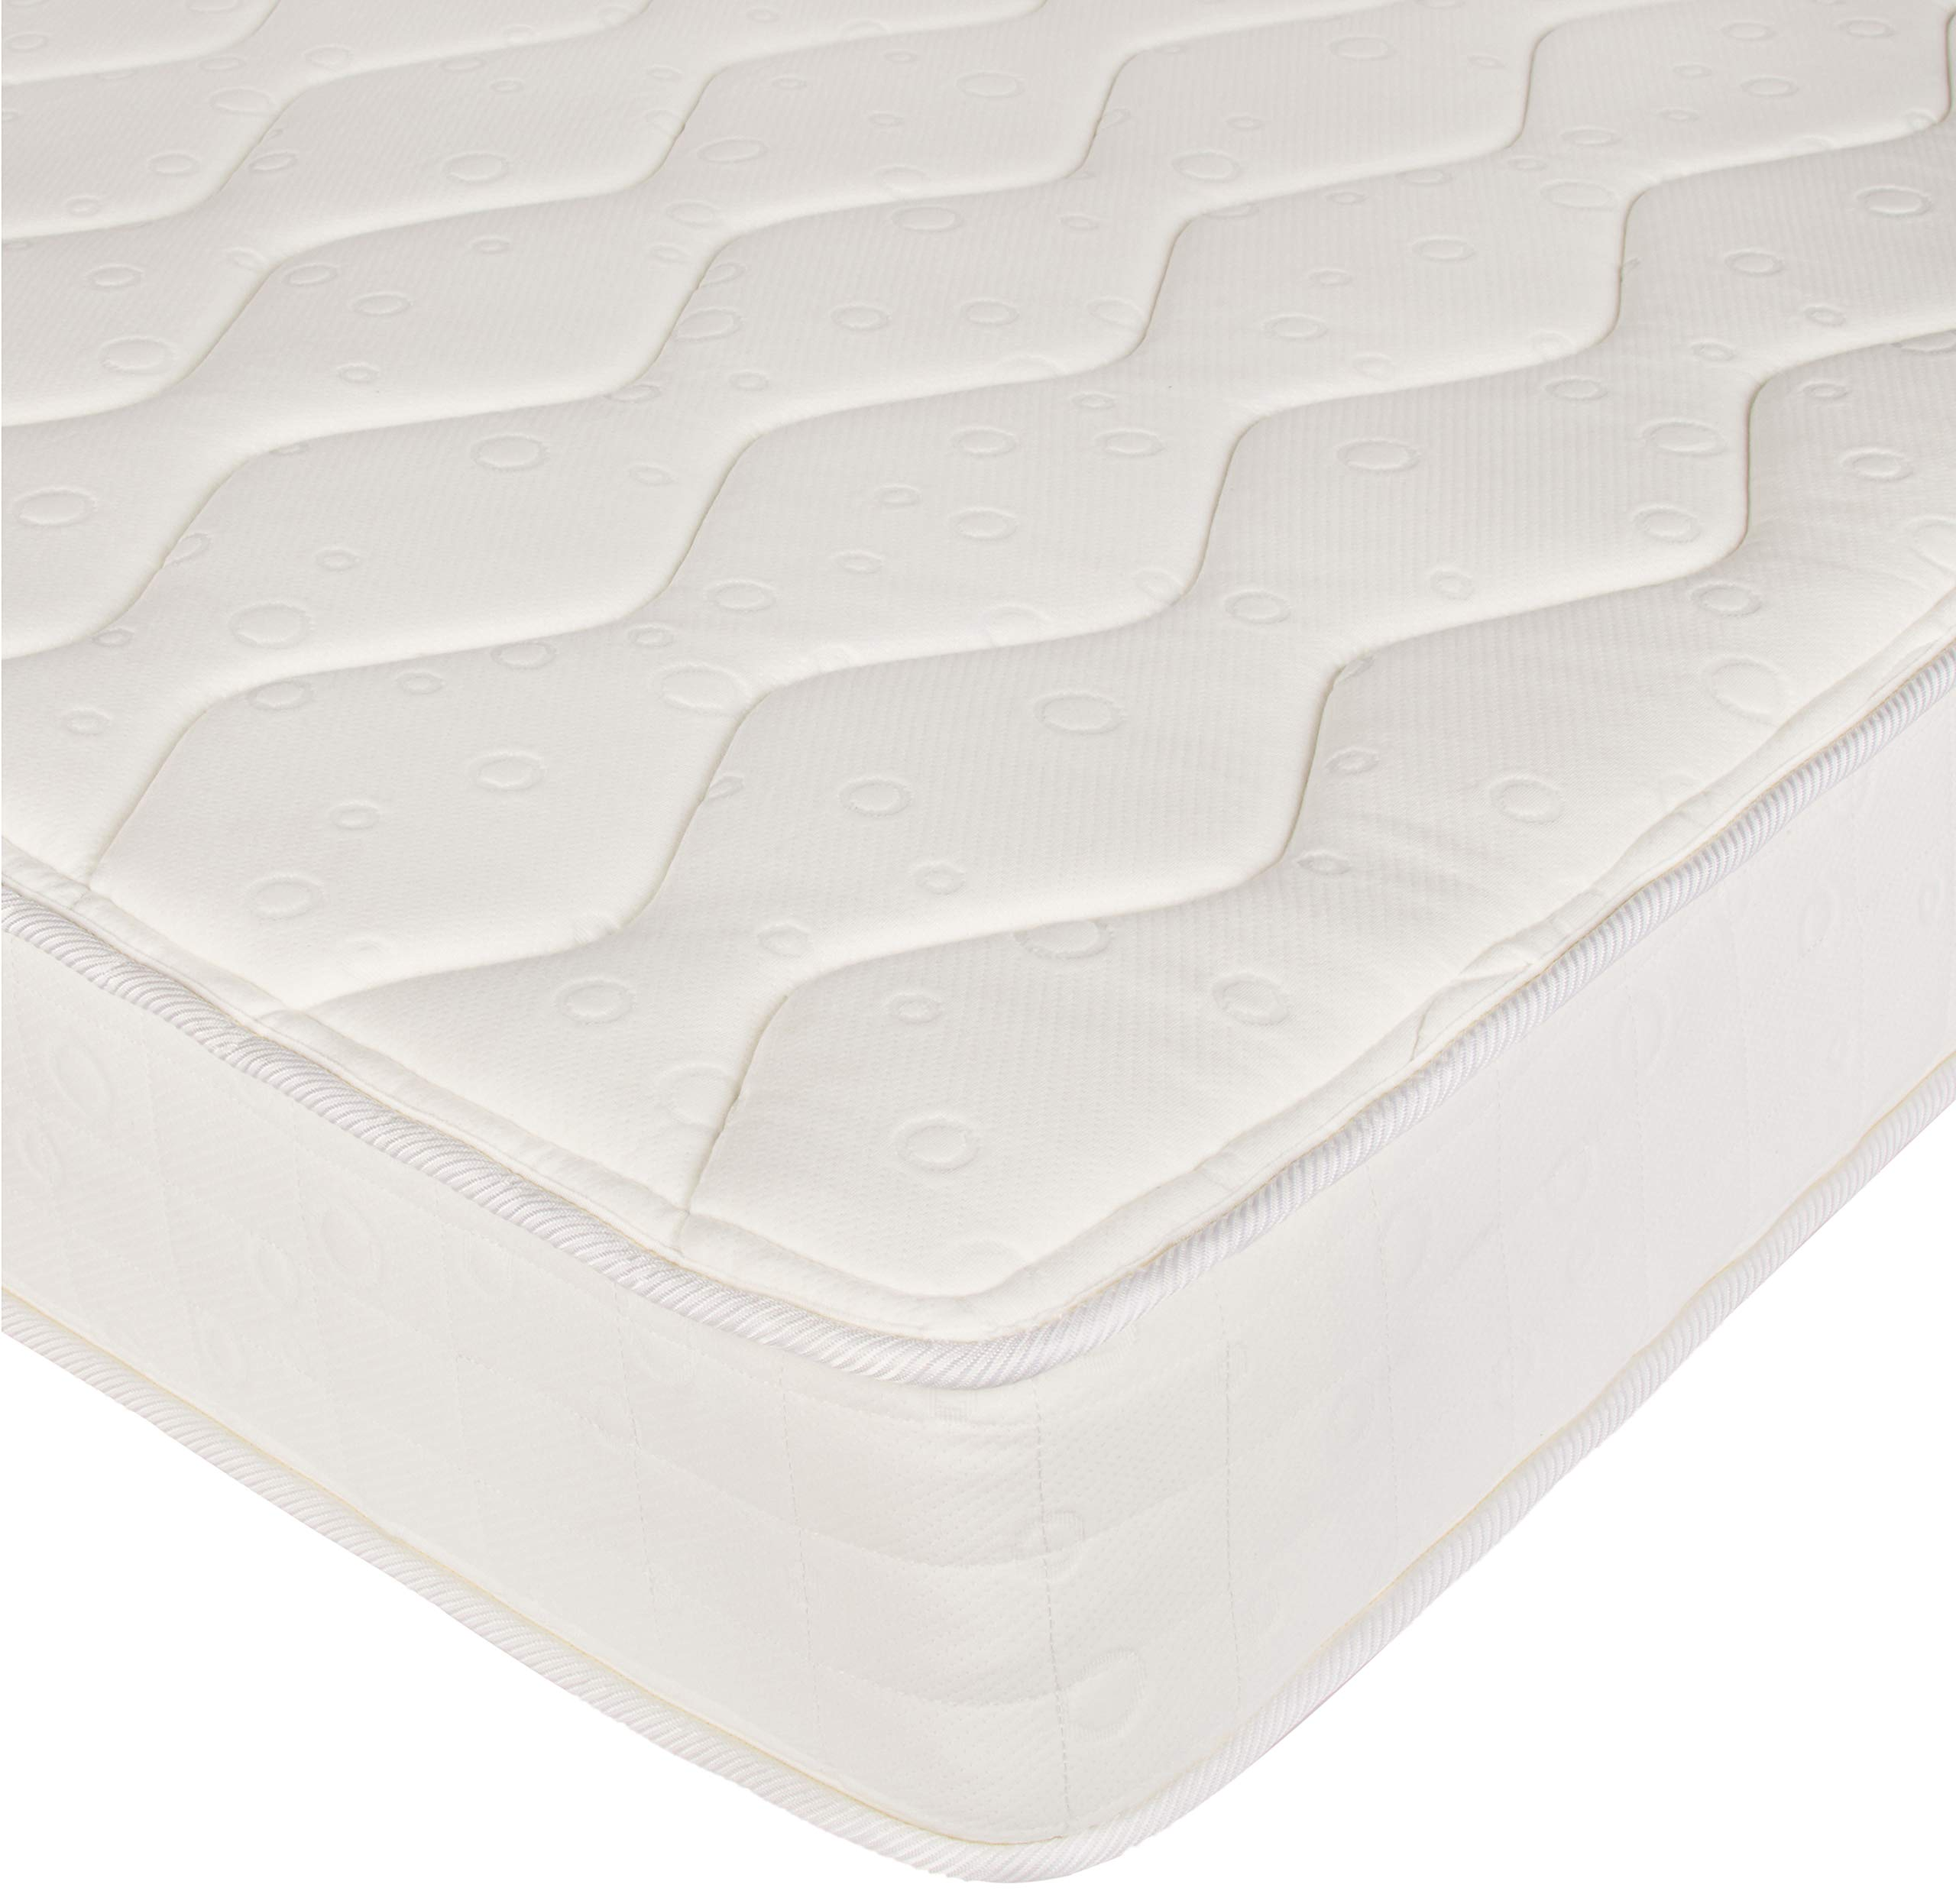 AmazonBasics Coil Mattress in a Box - Features Individual Pocket Spring for Motion Isolation, High-Density CertiPUR-US Certified Foam Layer - 8-Inch, Queen by AmazonBasics (Image #4)